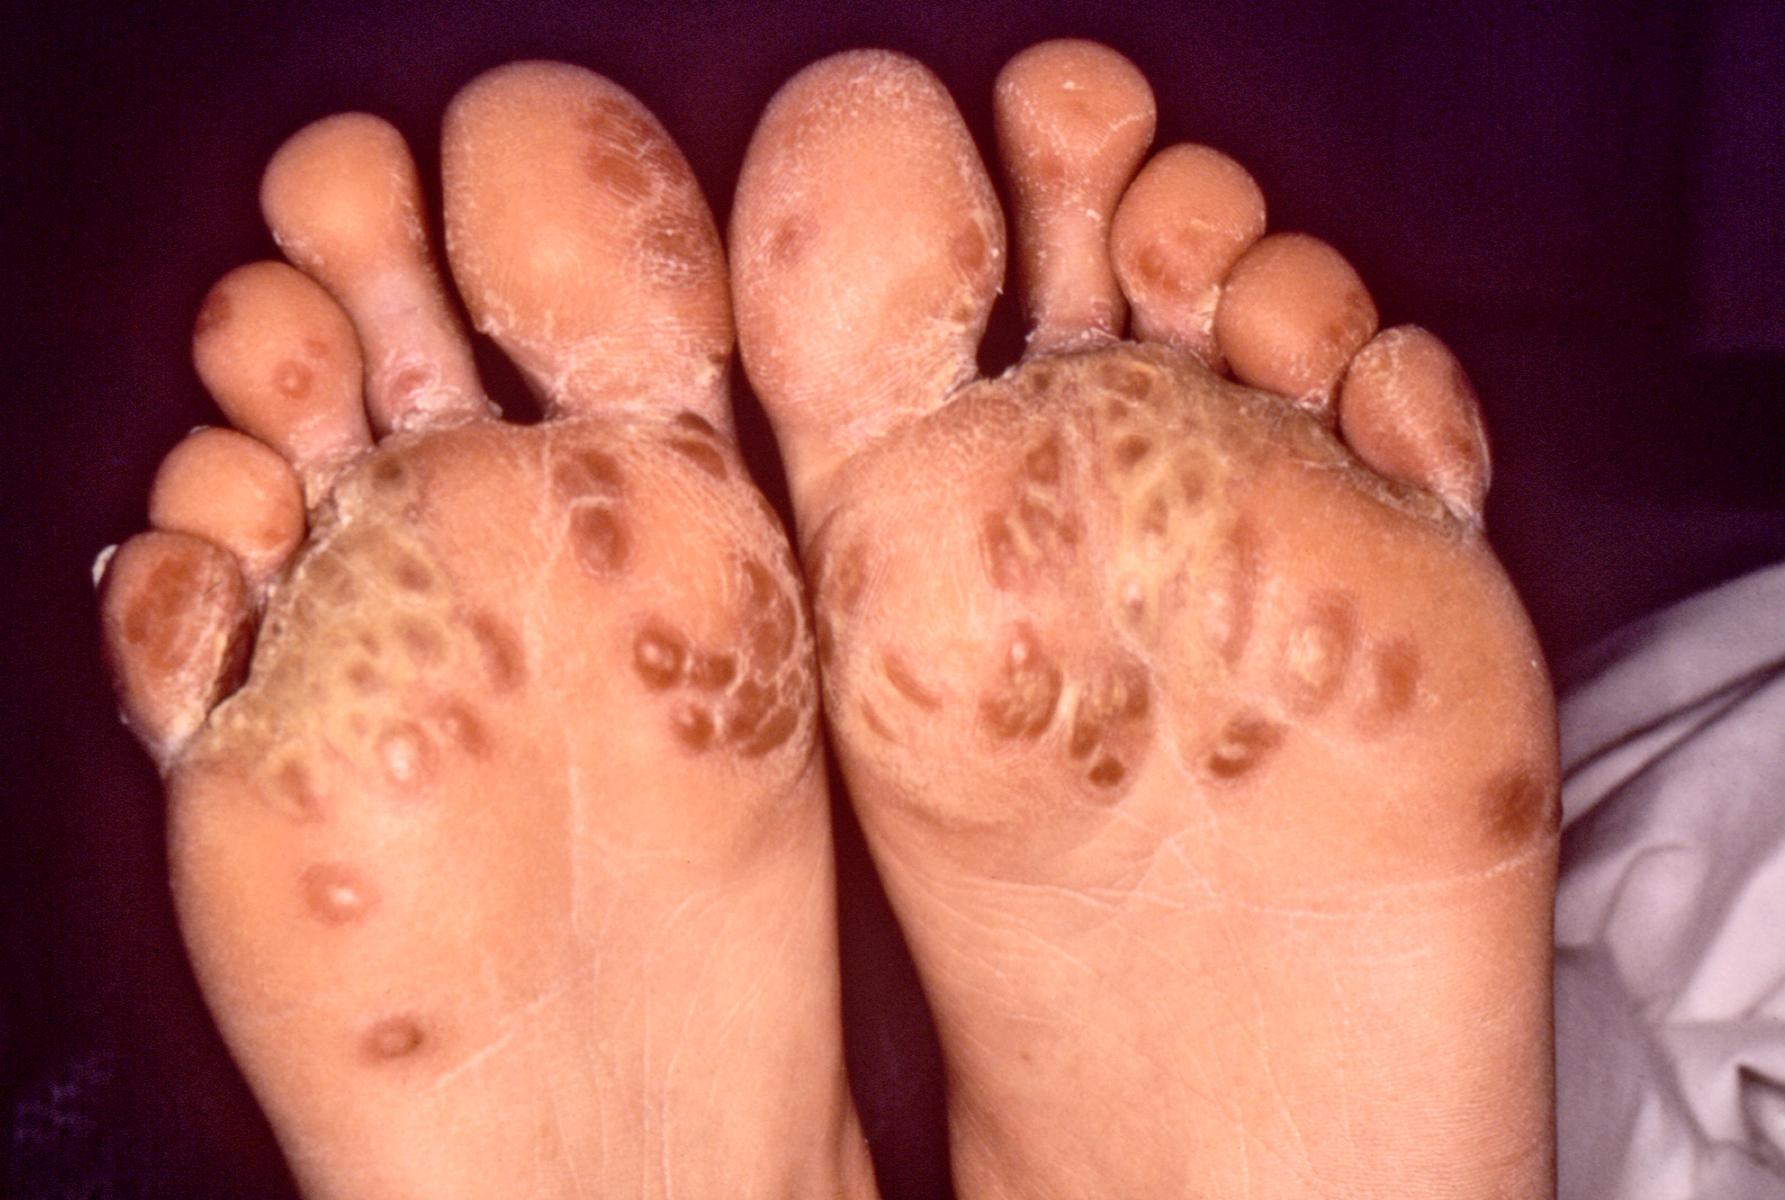 Male with sole rash-feet-rash.jpg